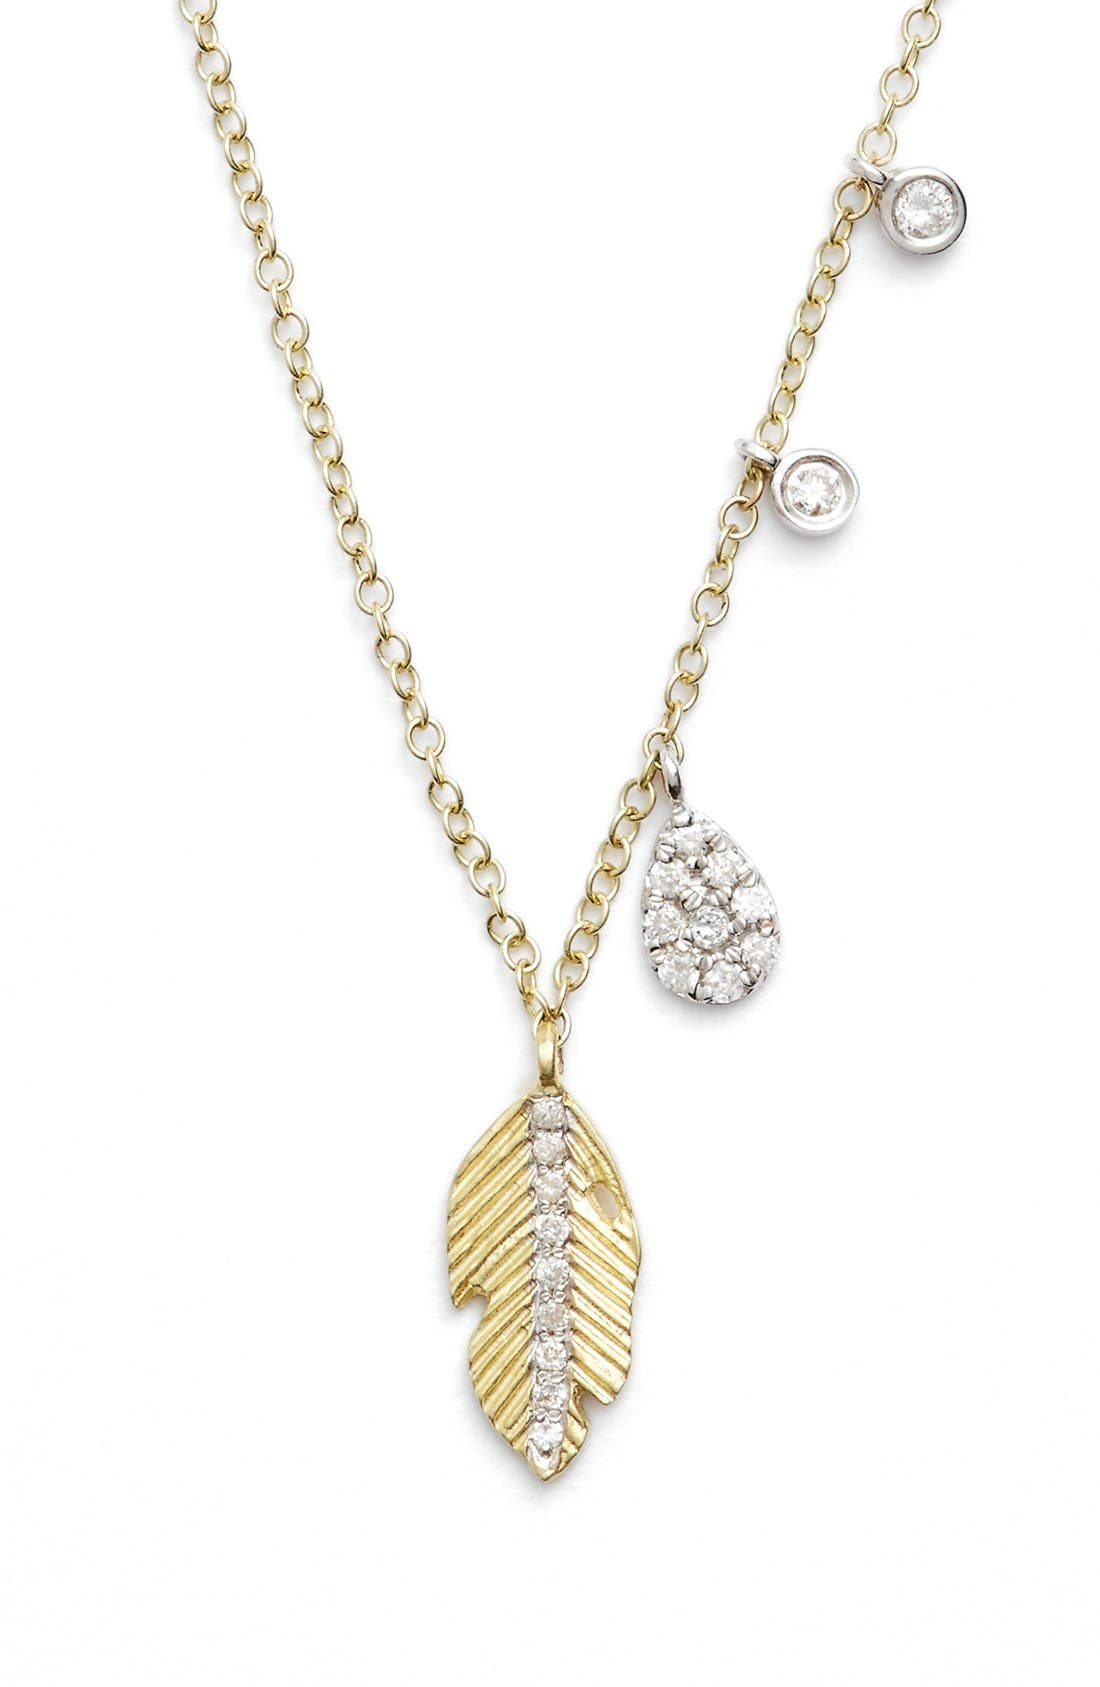 Leaf Pendant Necklace,                             Main thumbnail 1, color,                             YELLOW GOLD/ WHITE GOLD